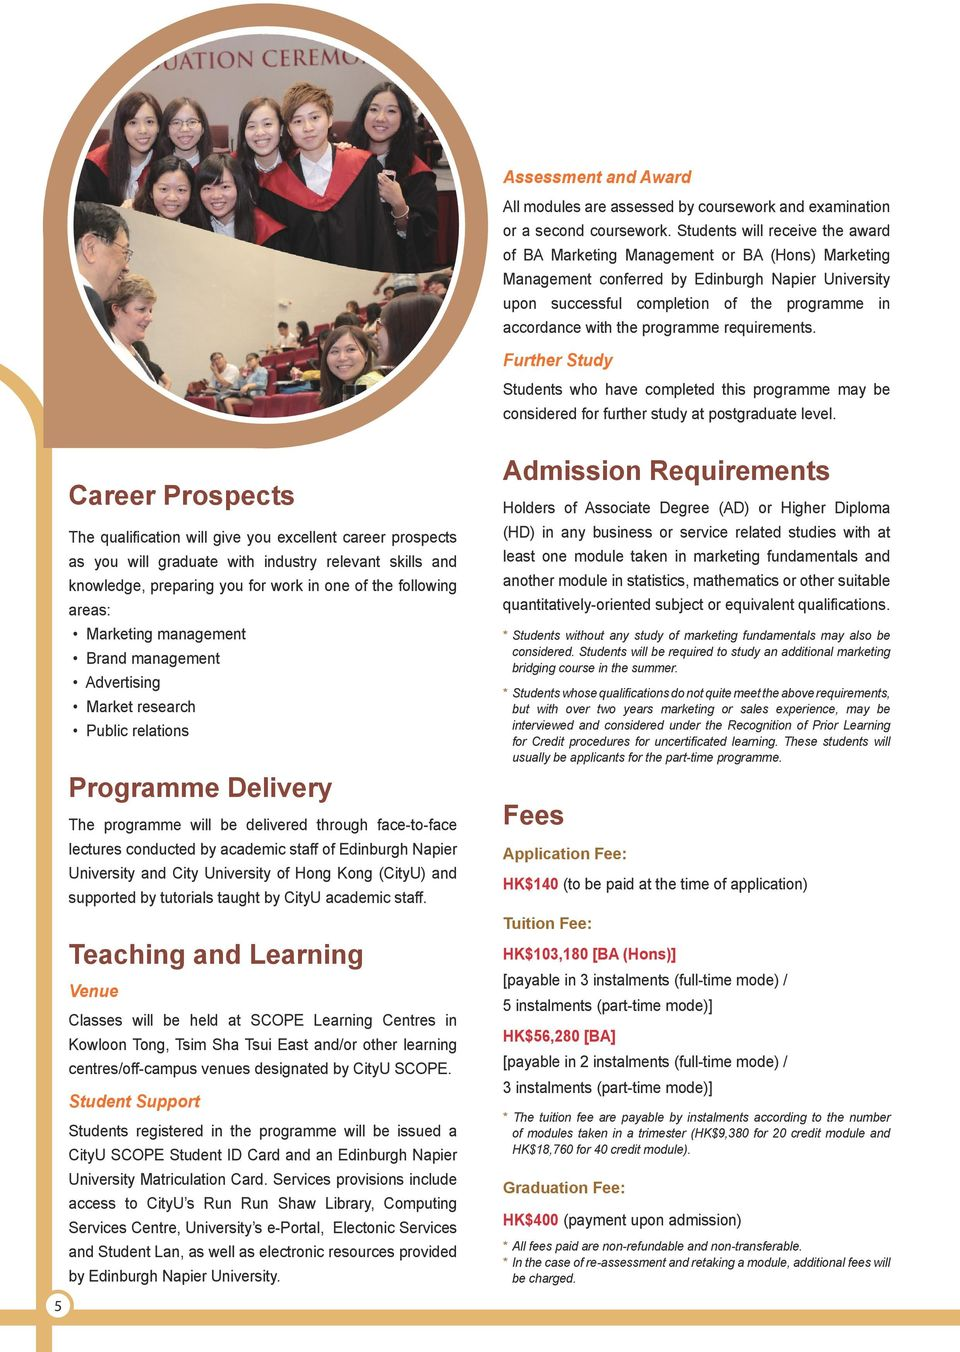 the programme requirements. Further Study Students who have completed this programme may be considered for further study at postgraduate level.